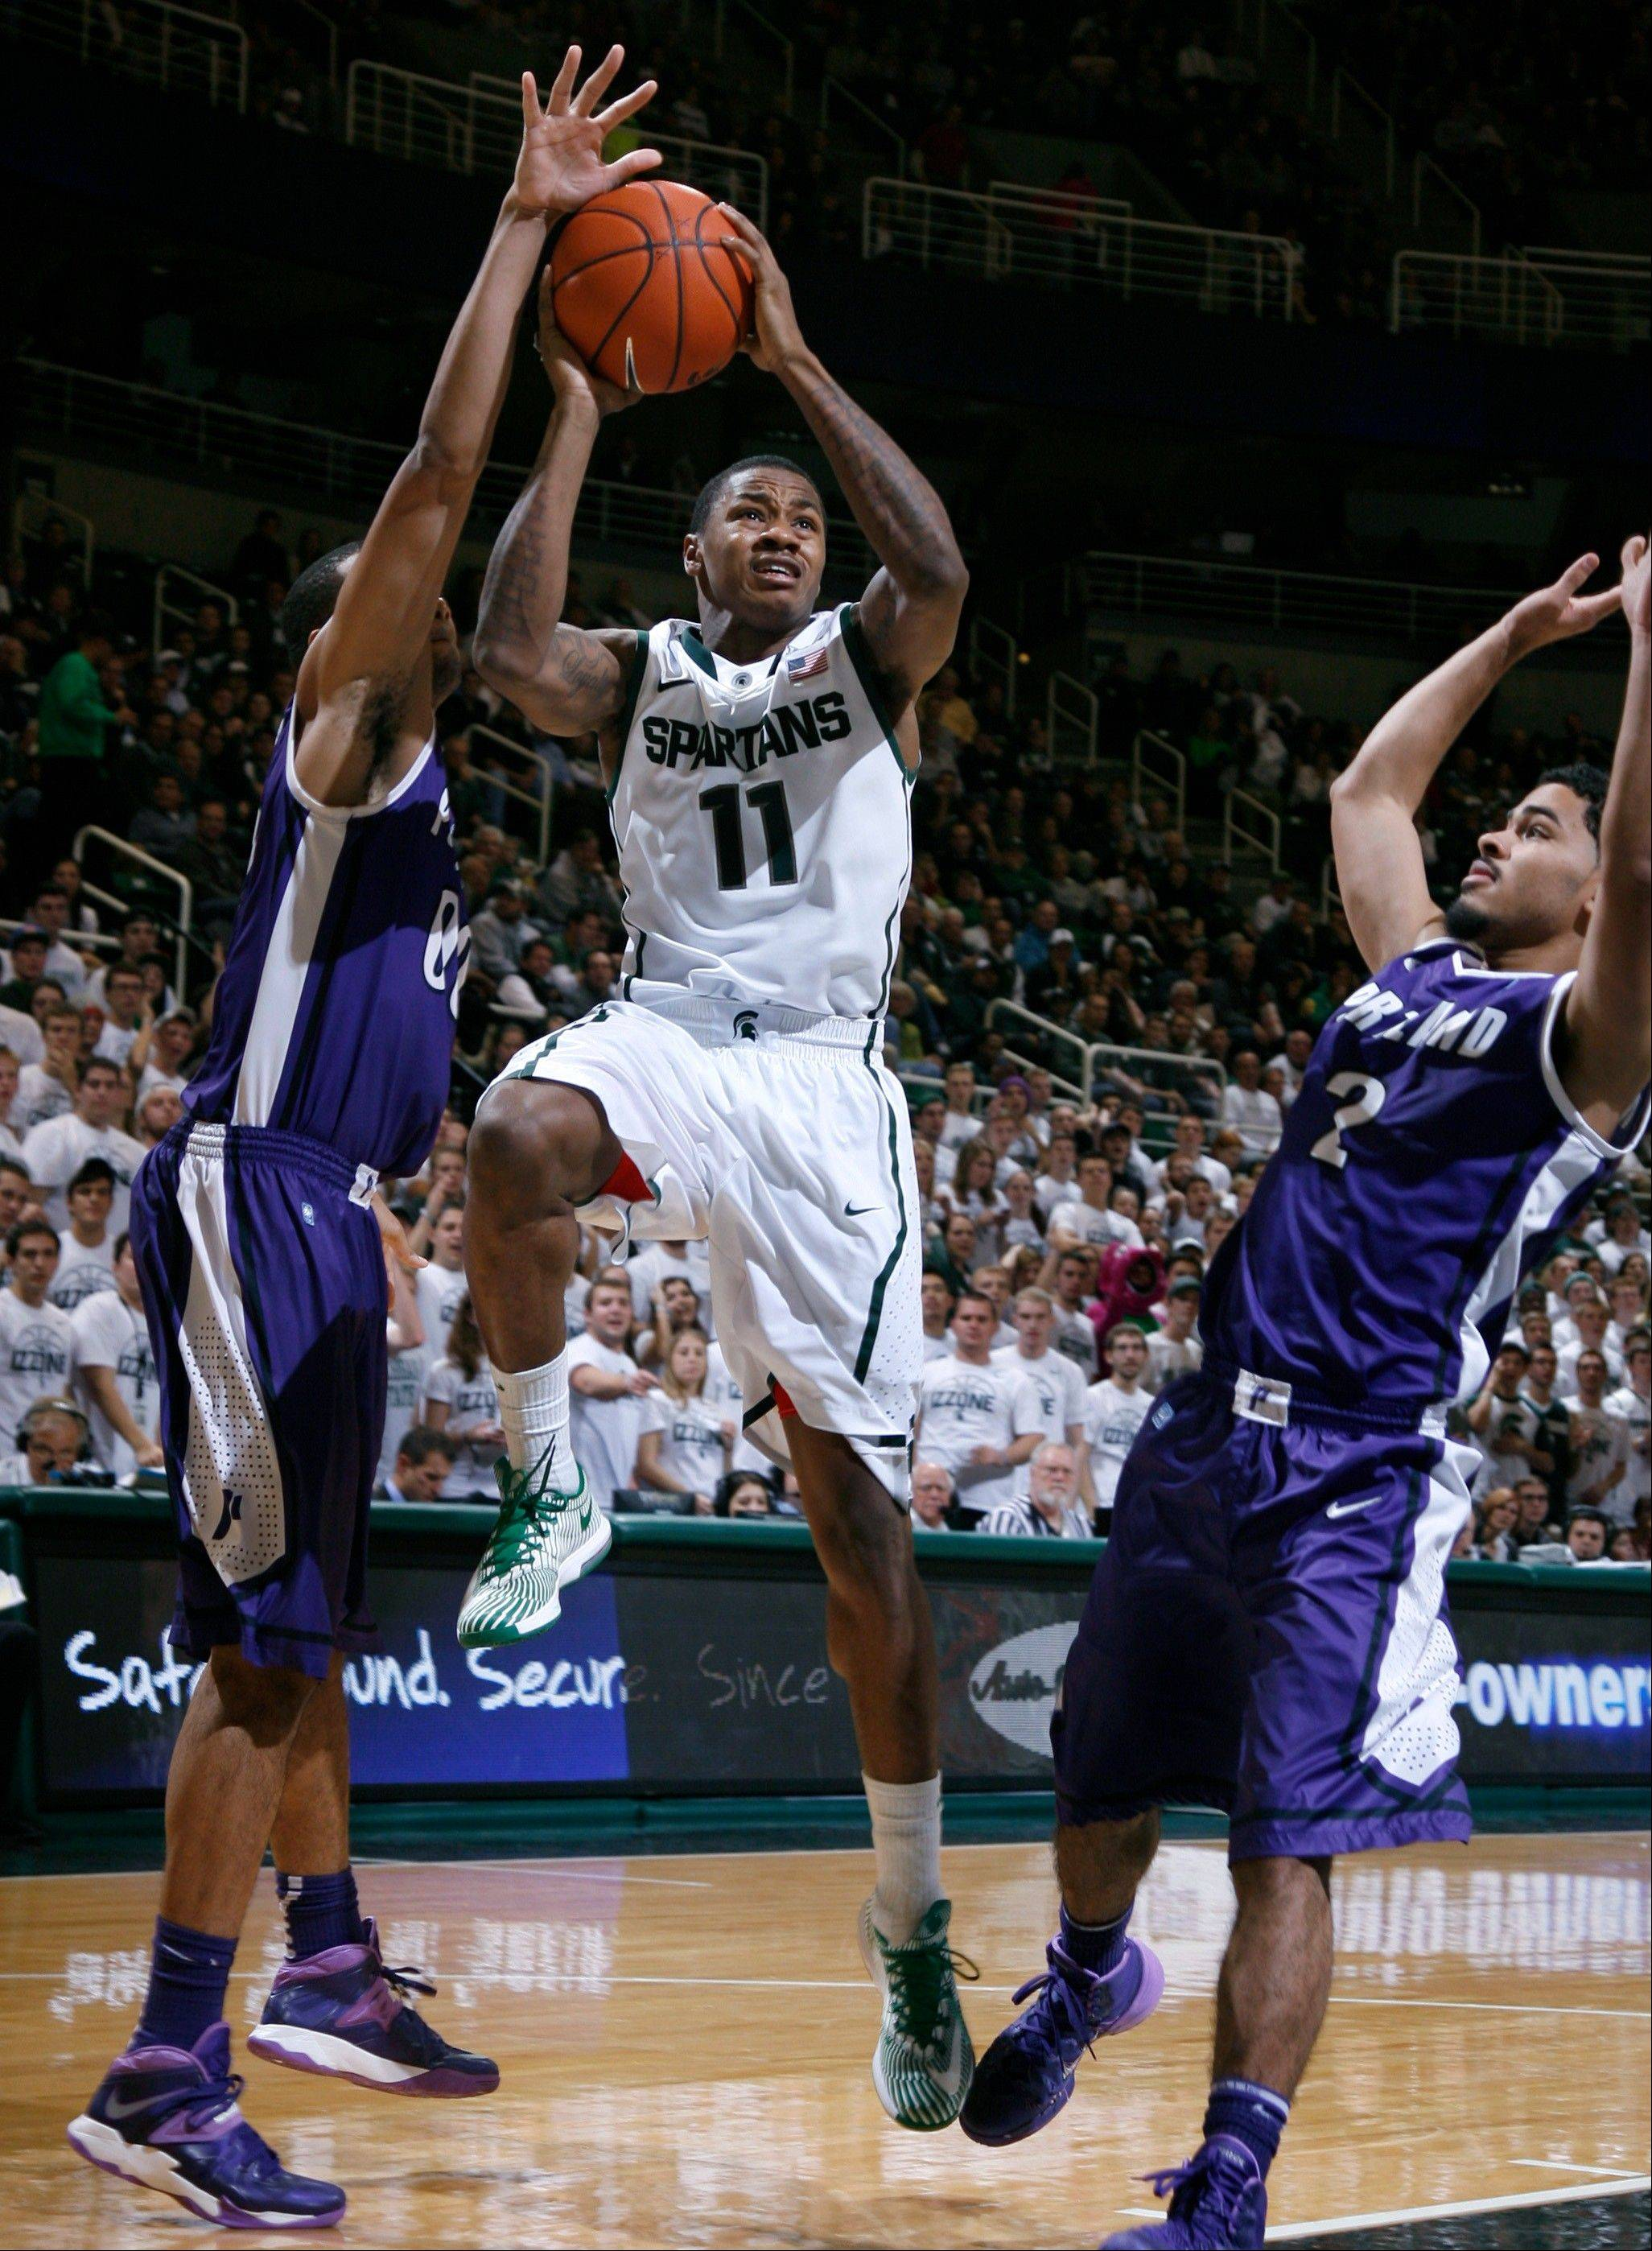 Michigan State's Keith Appling drives between Portland's Kevin Bailey, left, and Alec Wintering during the second half of Monday's game in East Lansing, Mich.